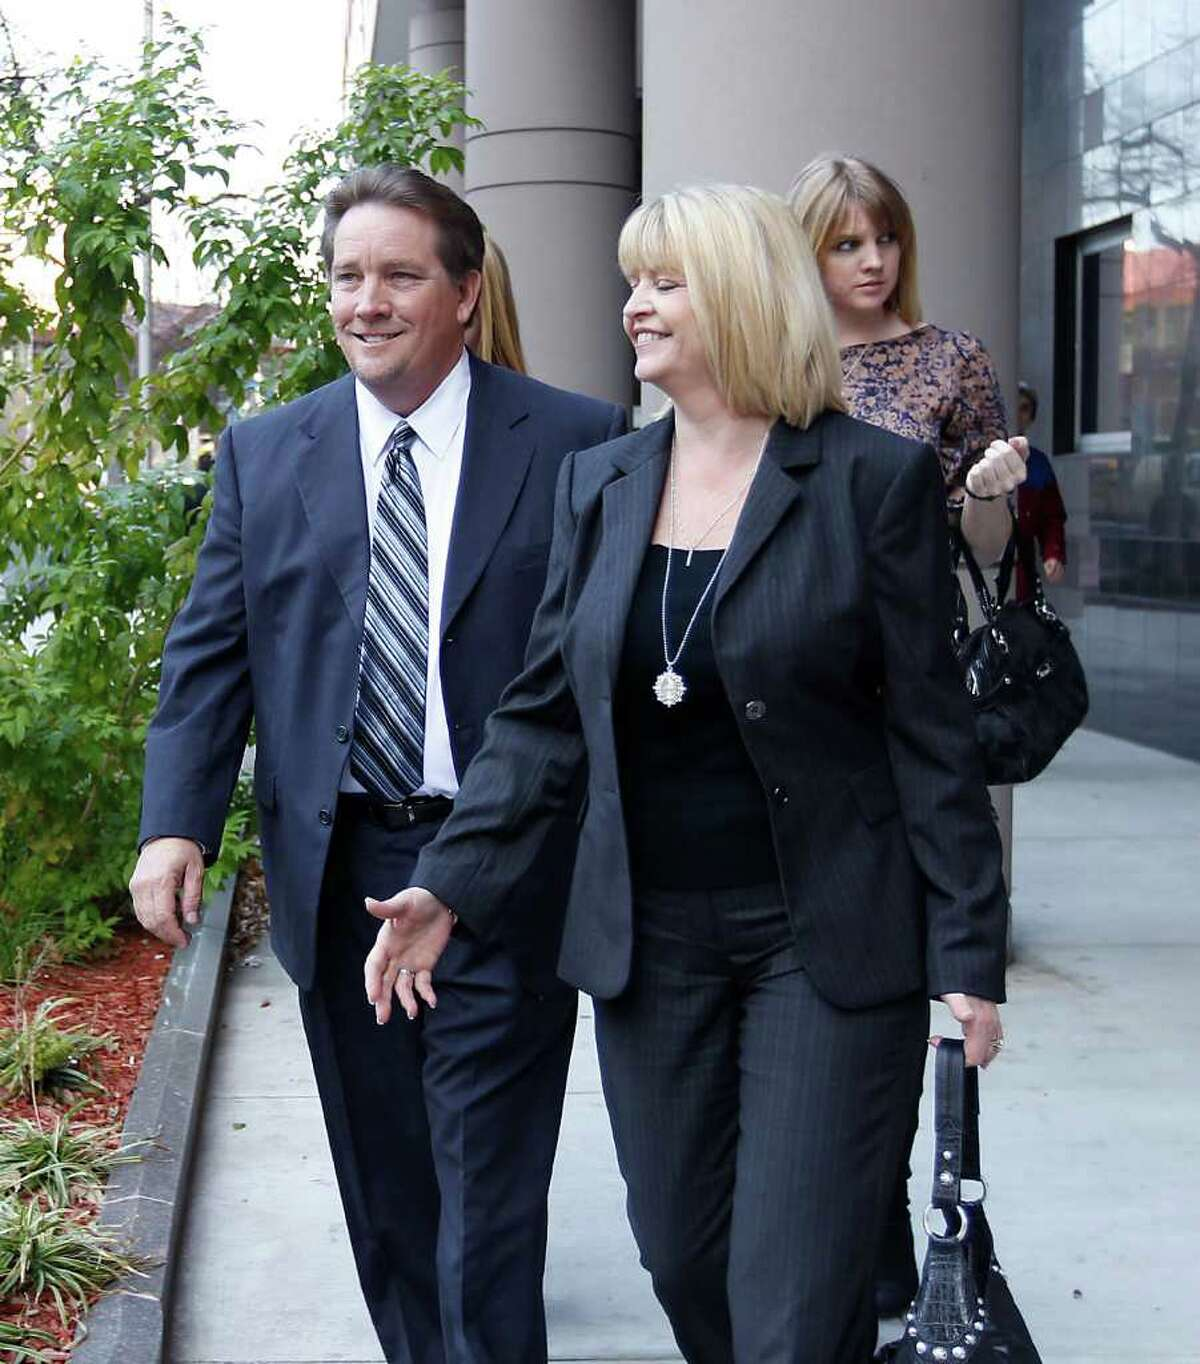 Michael Surface leaves the Federal Courthouse after being handed a sentence of three years probation for making false statements to FBI agents.